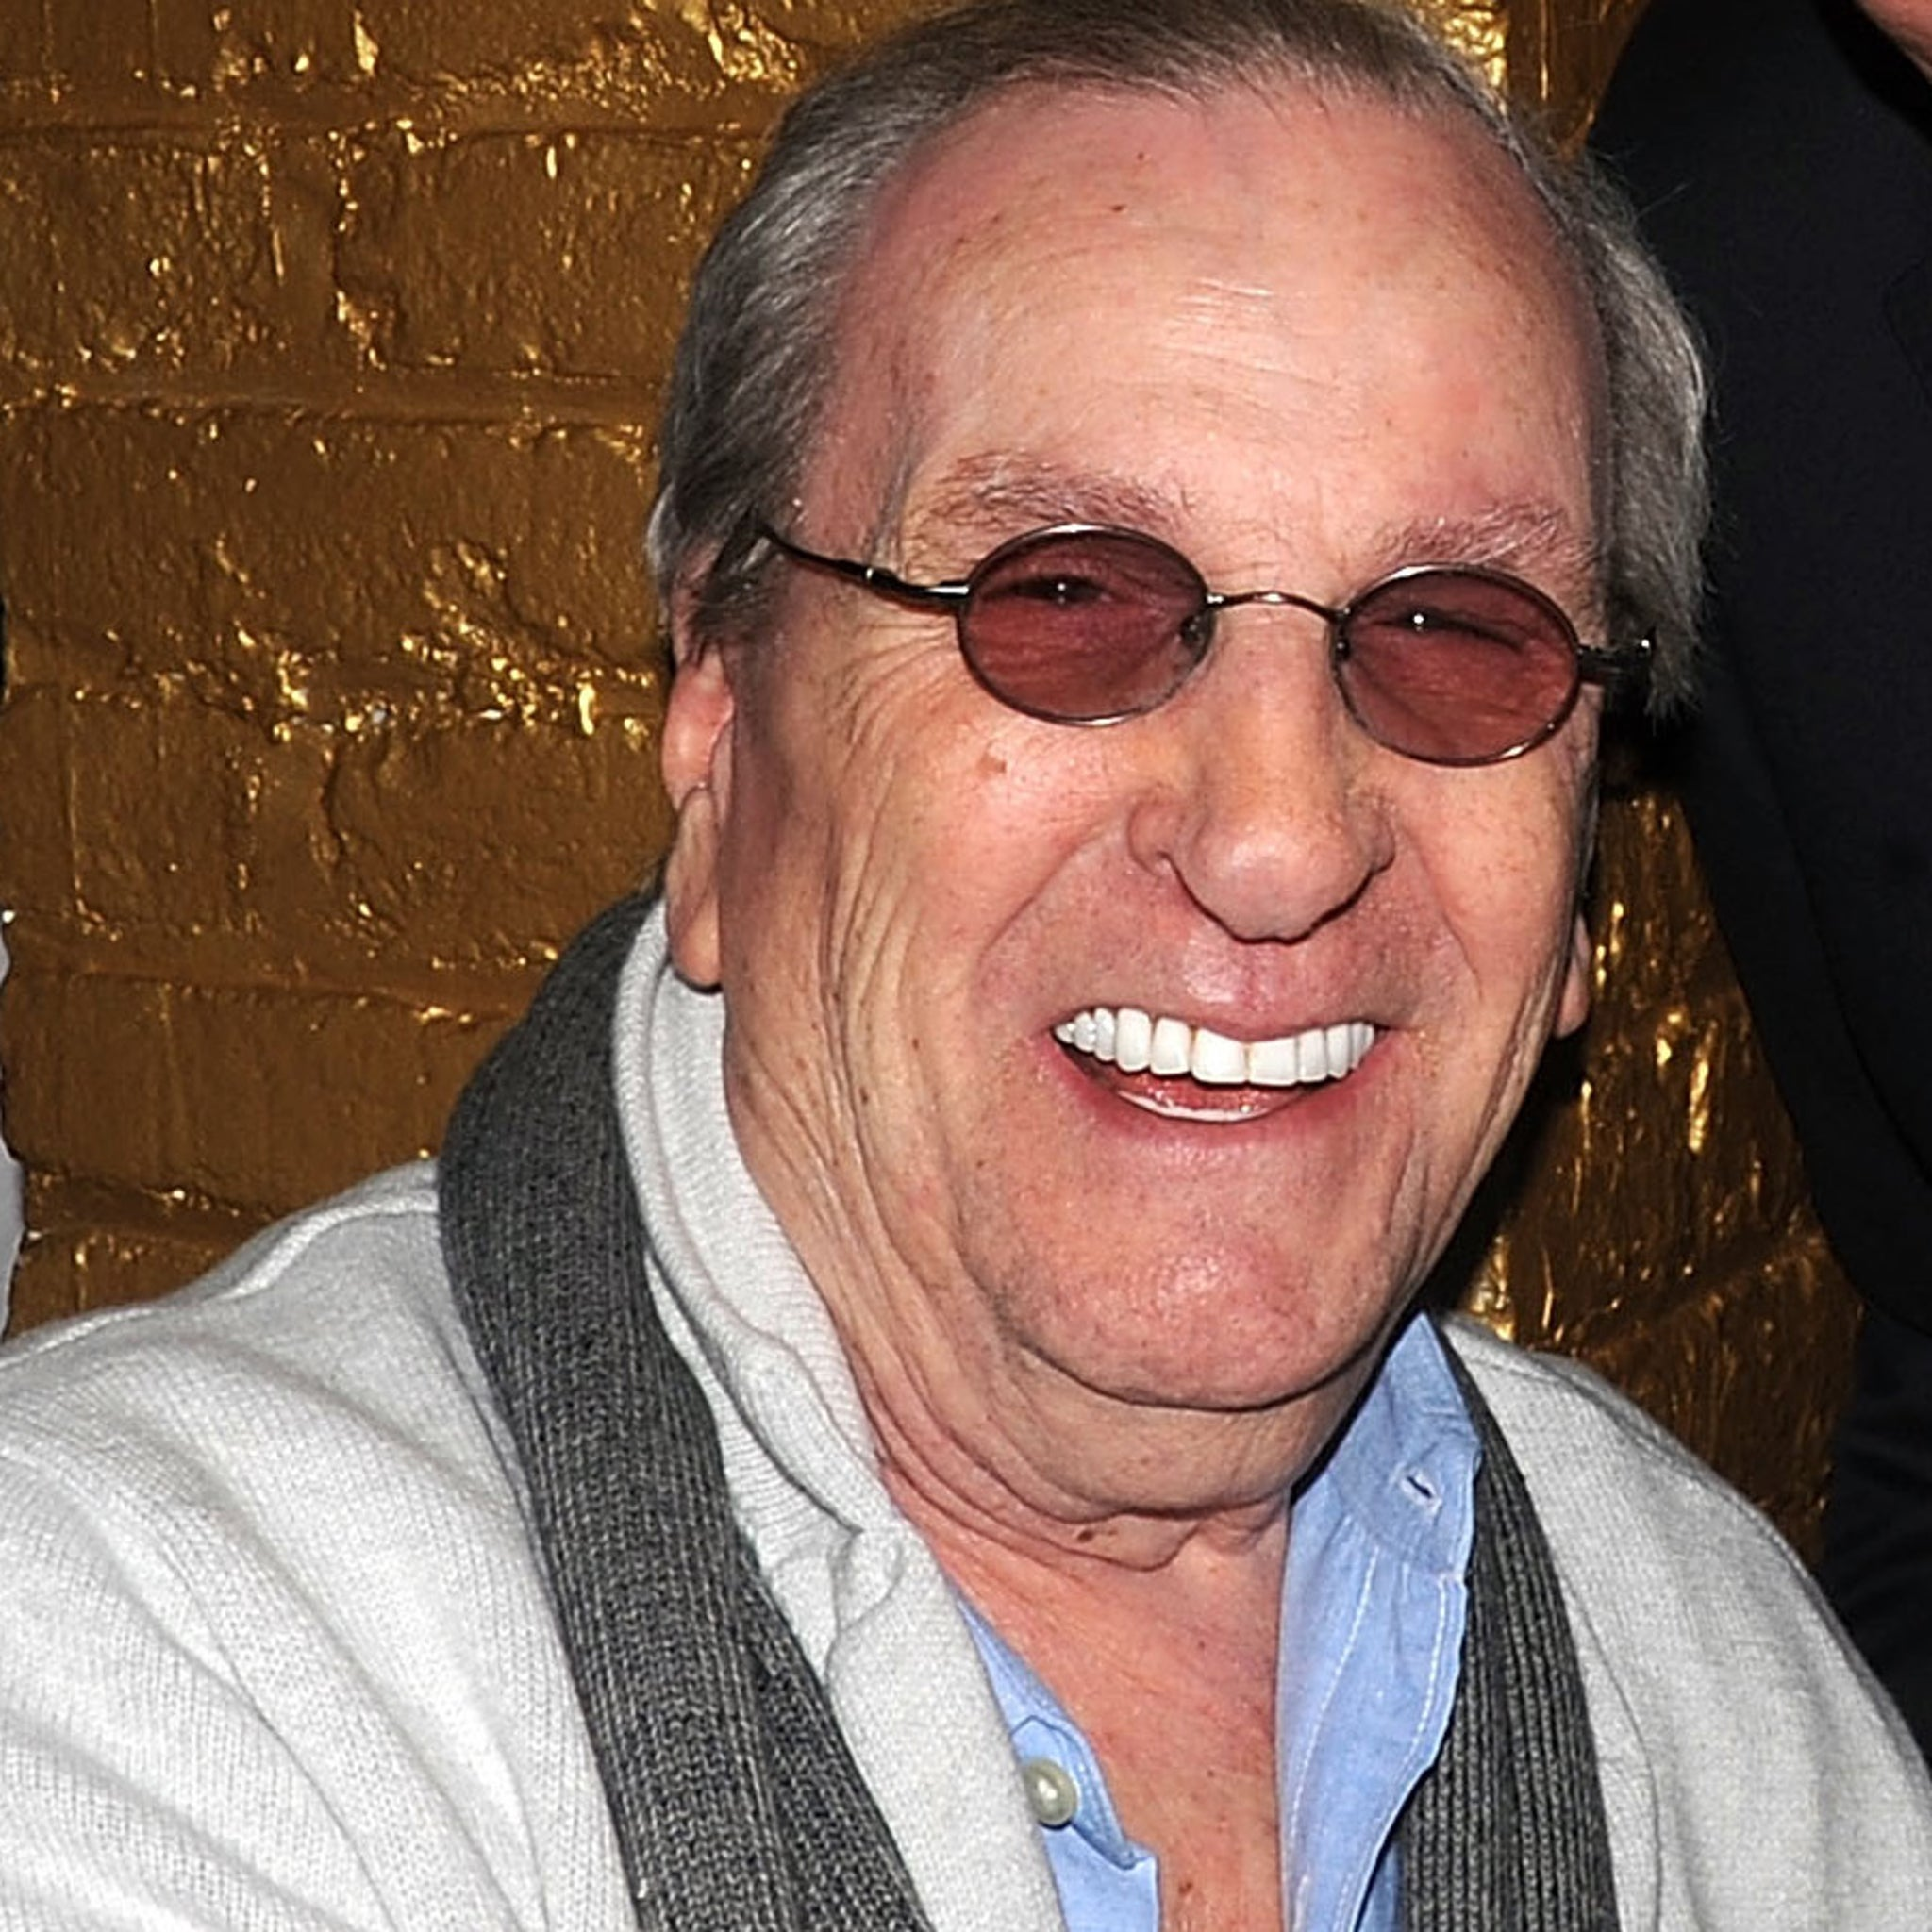 'Do the Right Thing' Star Danny Aiello Dead at 86